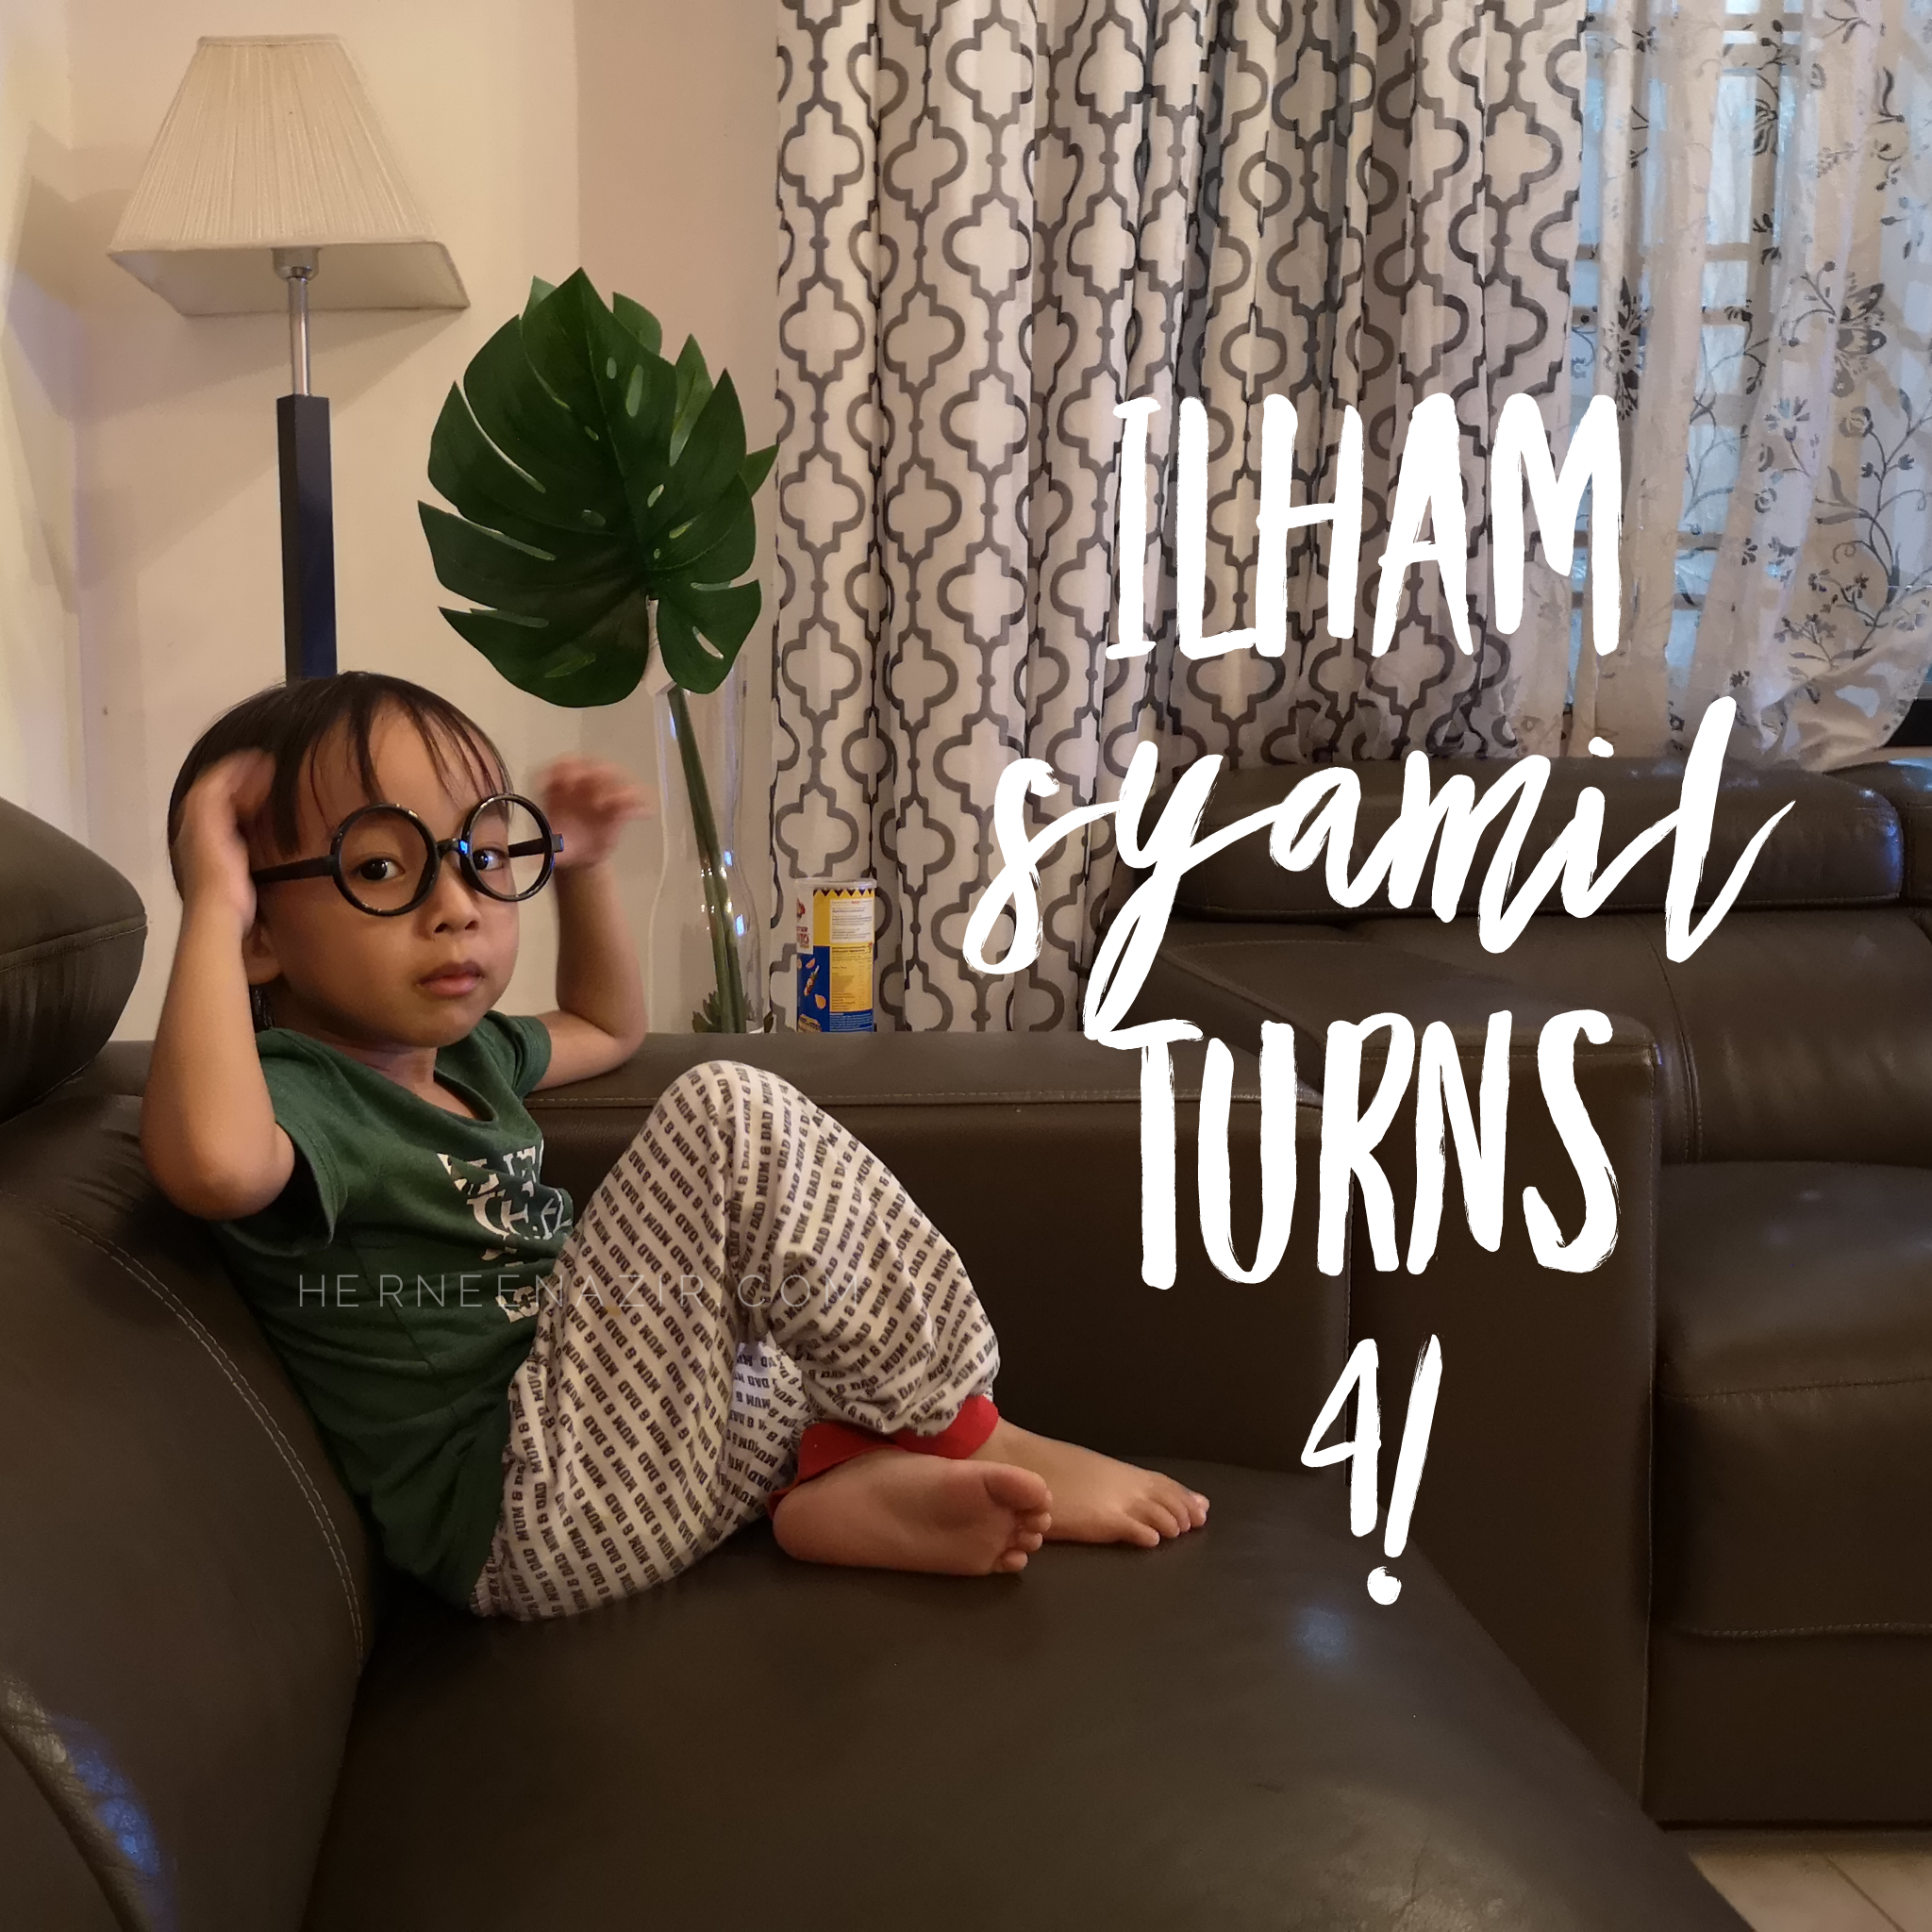 27 Jan 2019 | Ilham Syamil Turns 4!